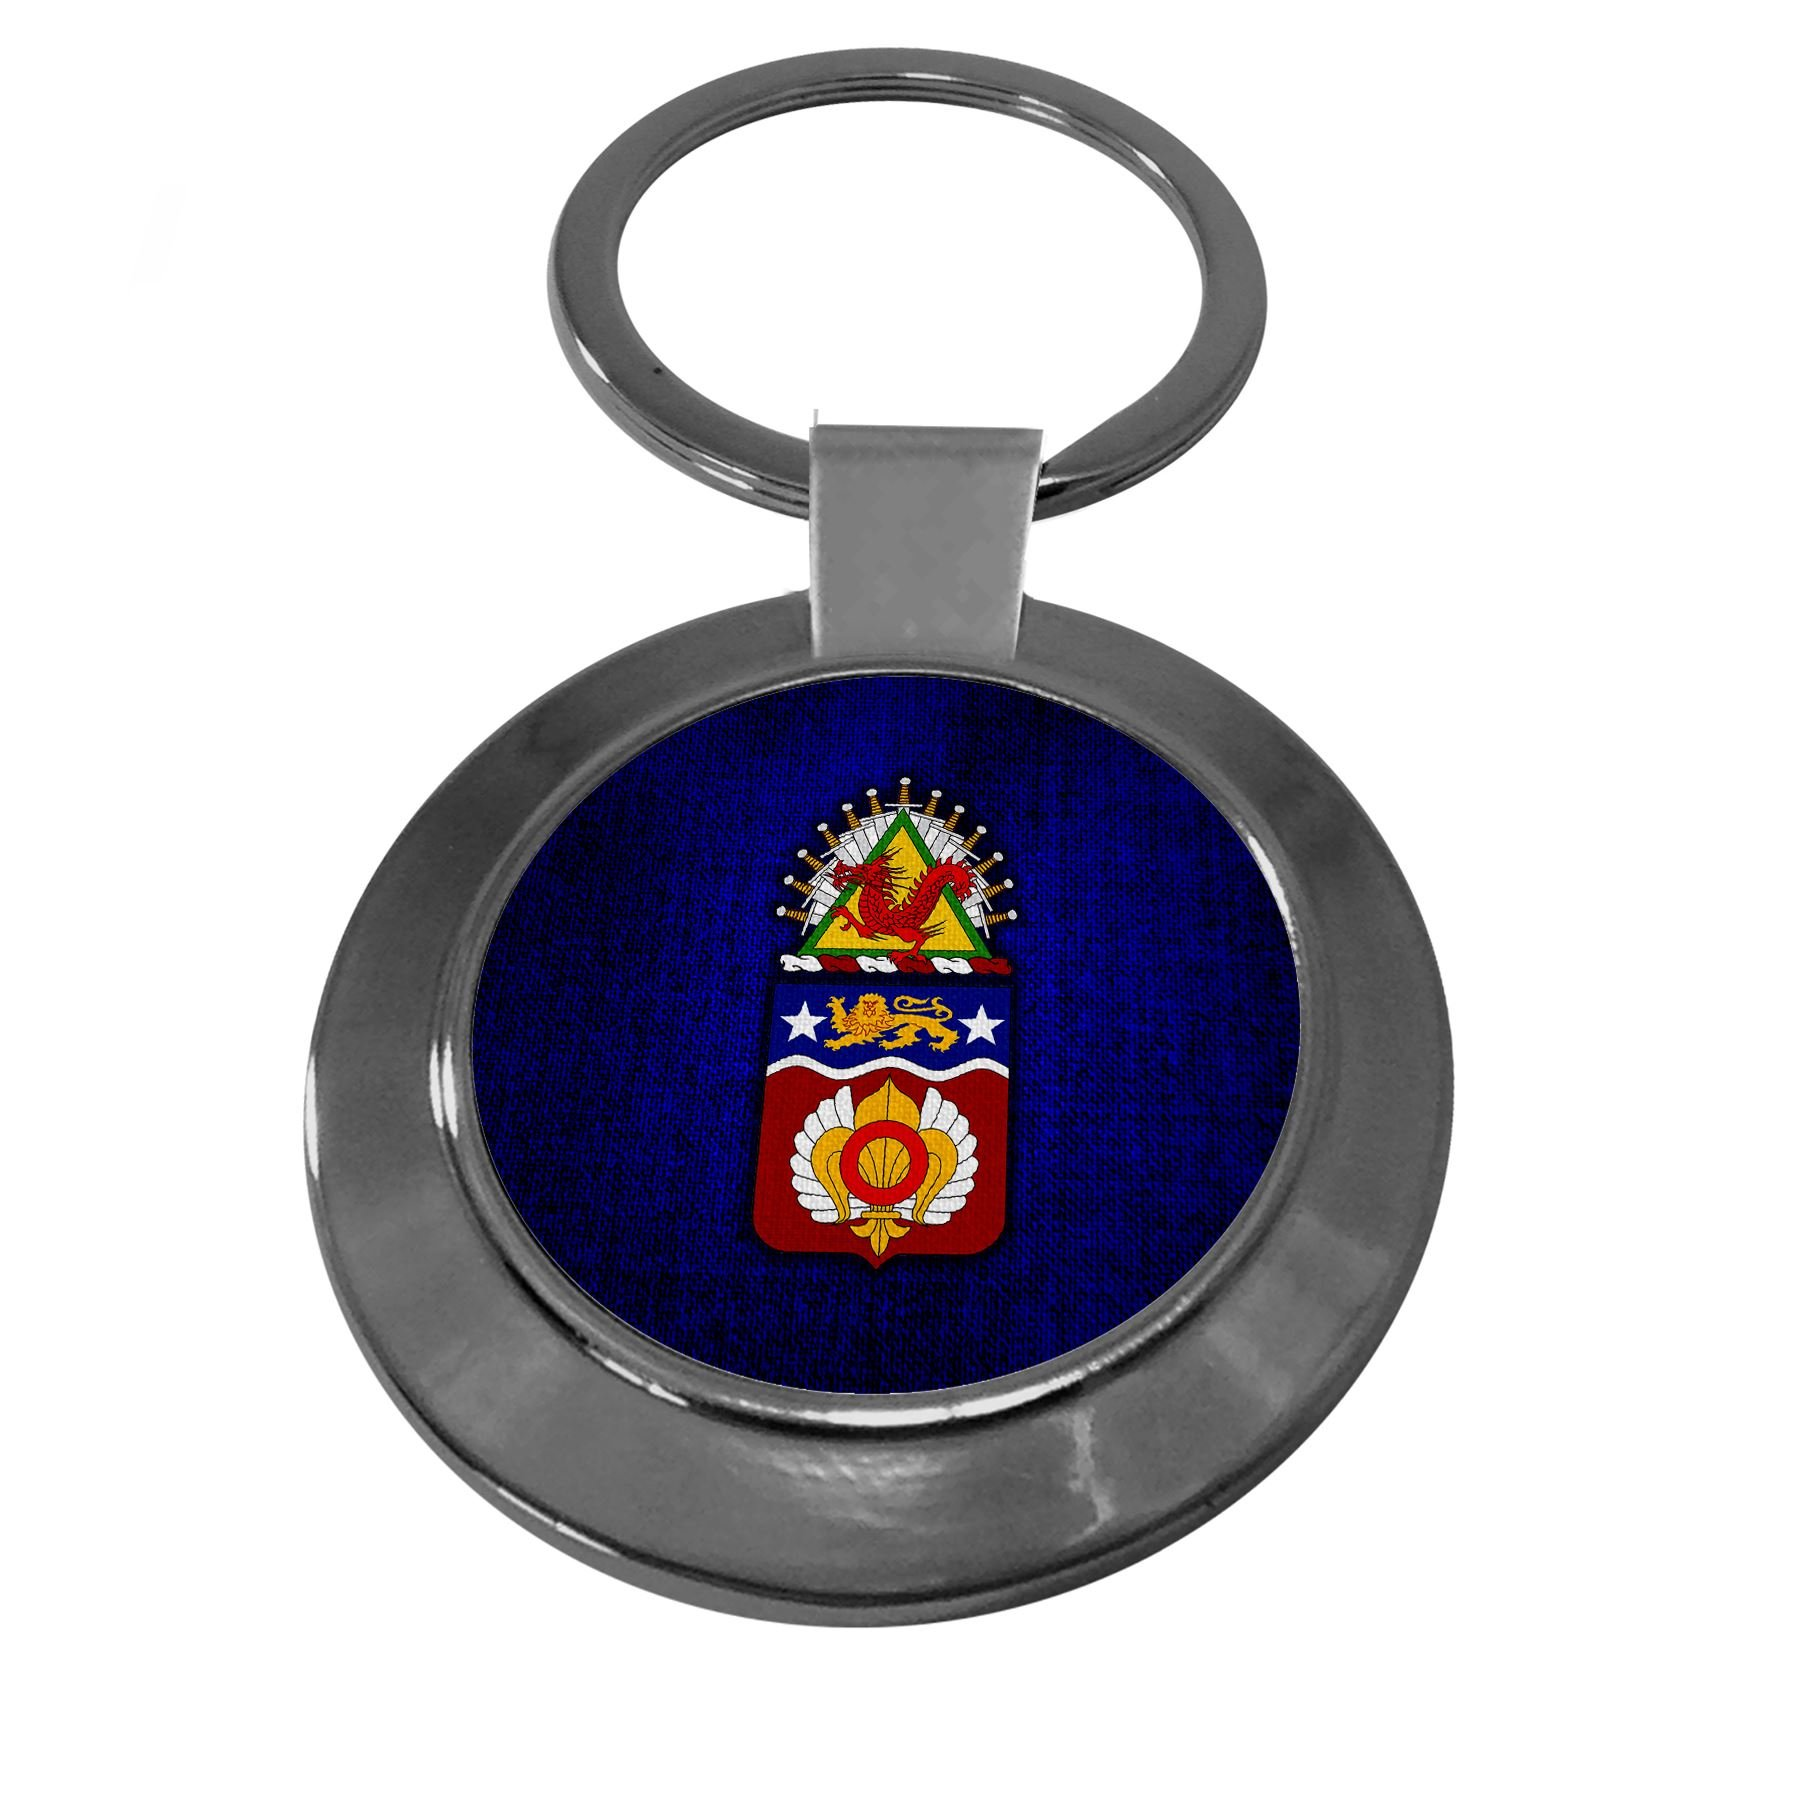 Premium Key Ring with U.S. Army 14th Transportation Battalion, coat of arms